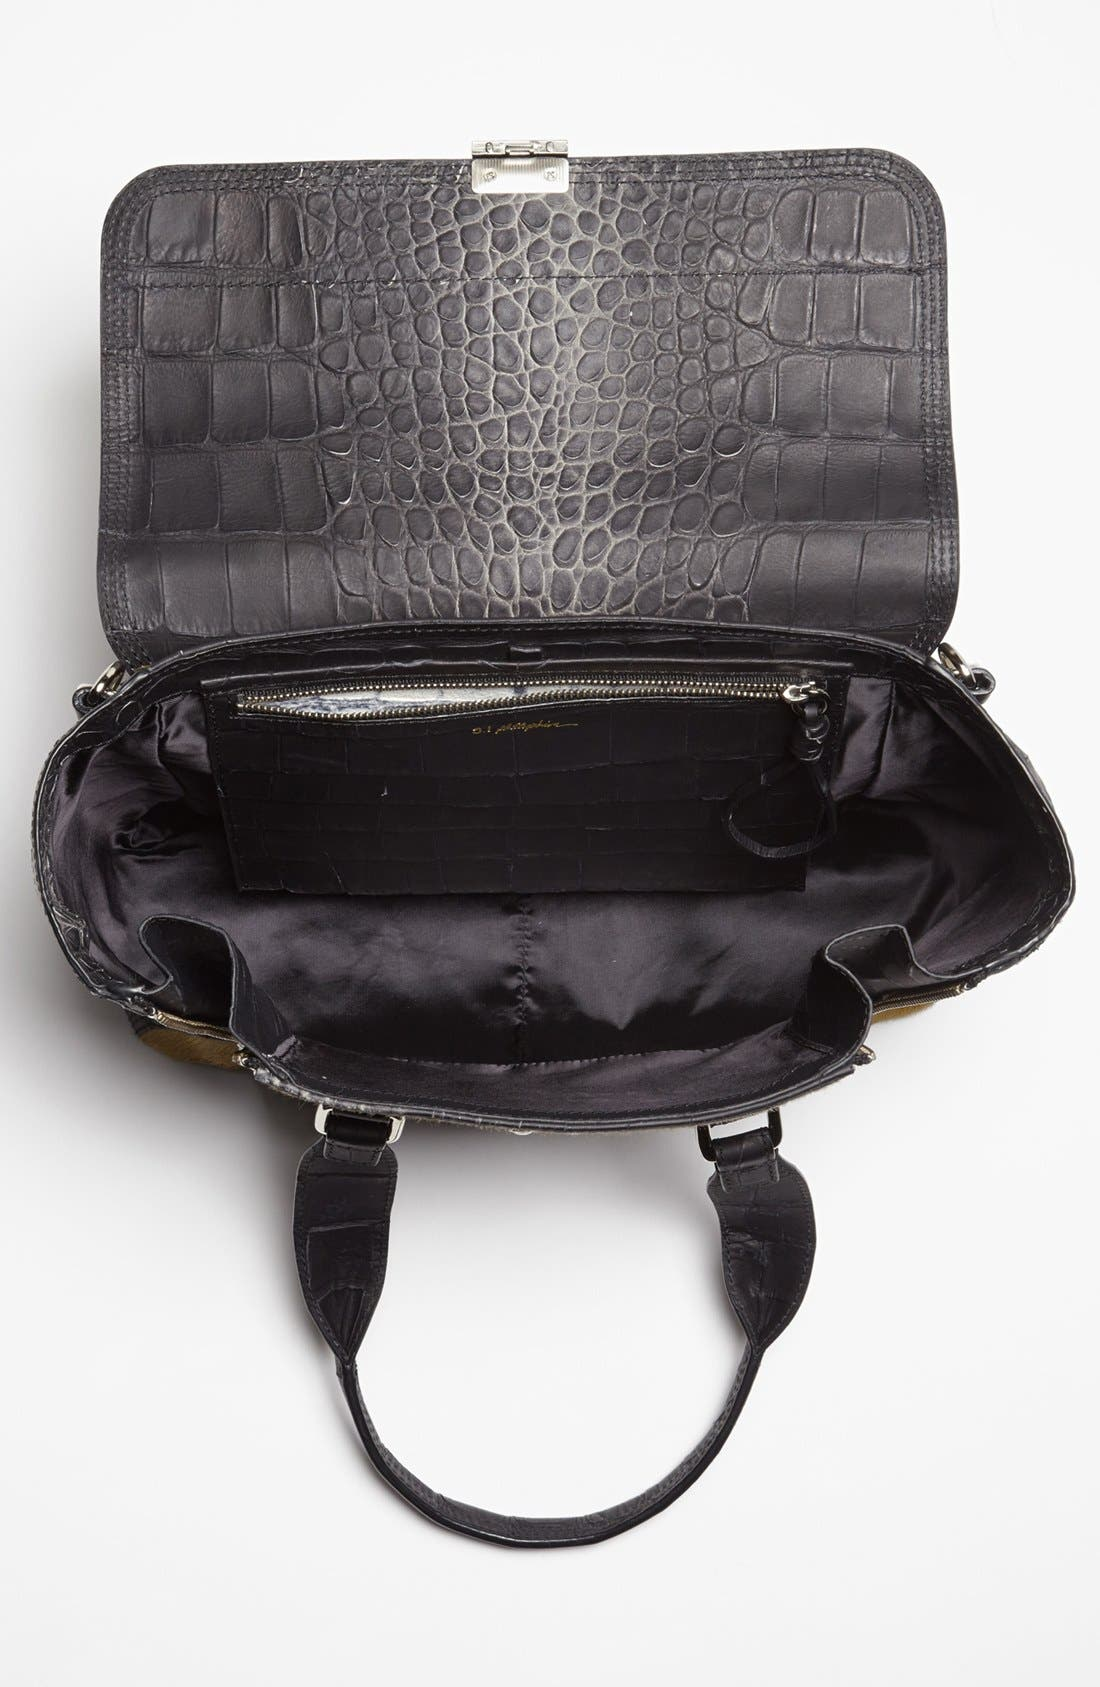 Alternate Image 3  - 3.1 Phillip Lim 'Pashli - Medium' Calf Hair & Leather Satchel